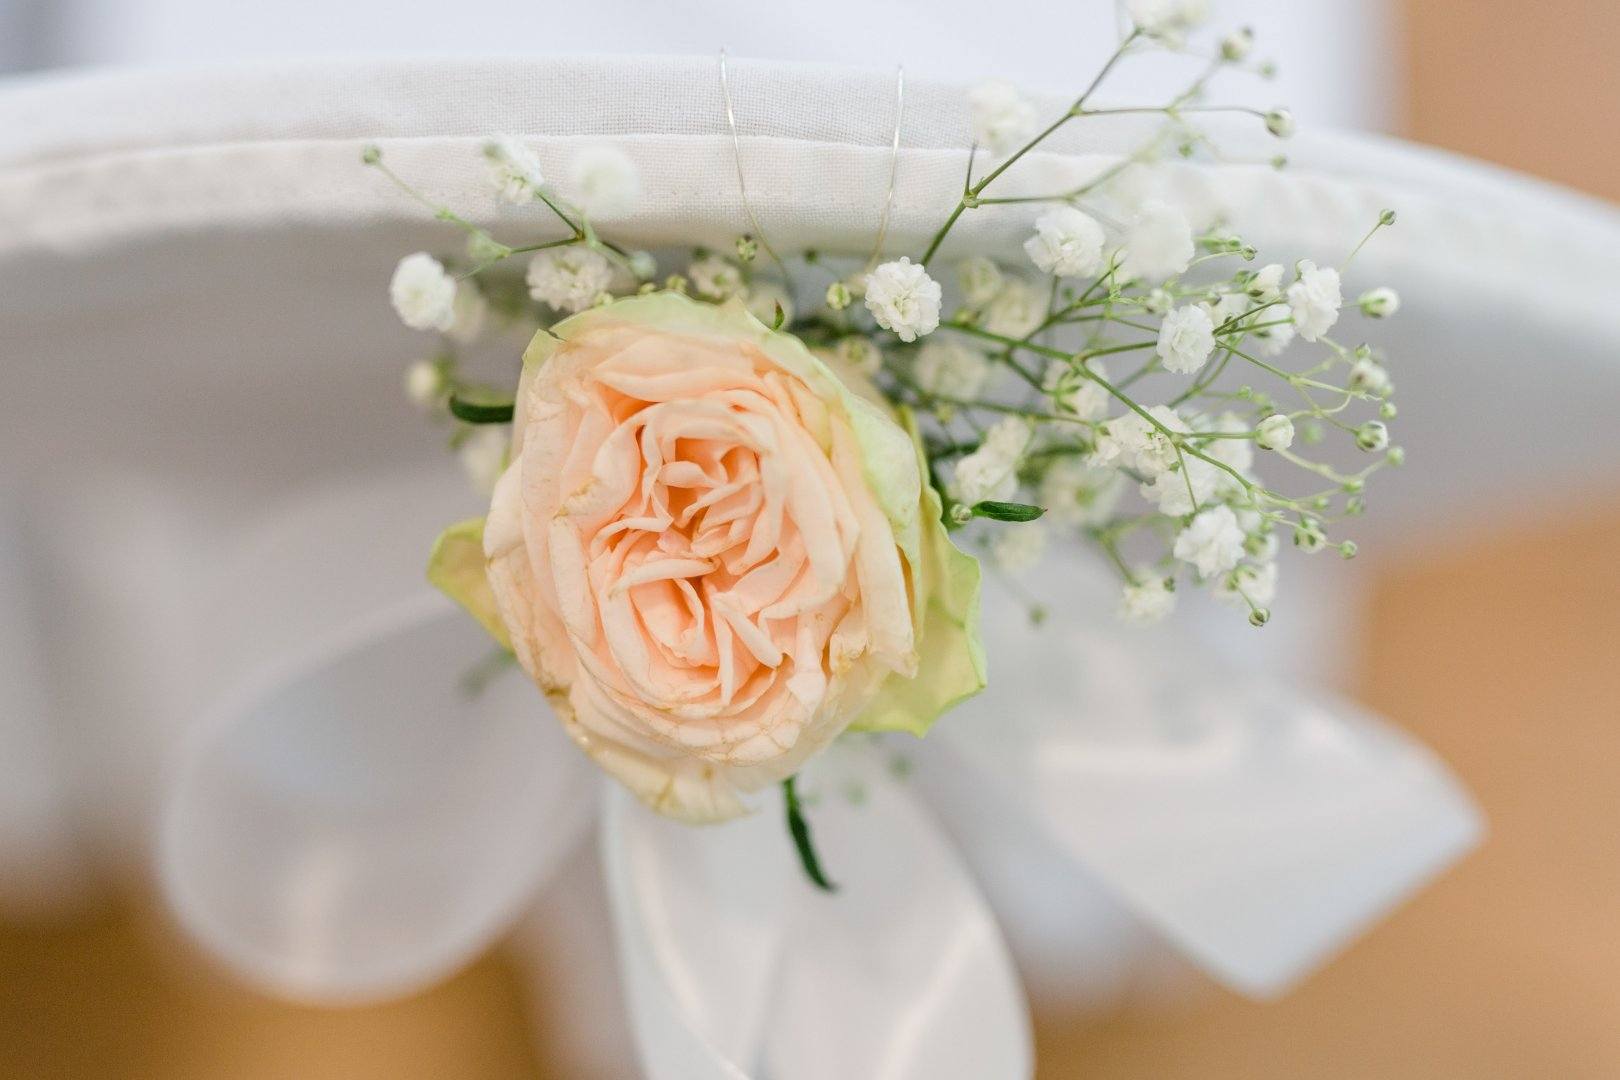 Bouquet Flower White Cut flowers Rose Flower Arranging Garden roses Plant Pink Yellow Floristry Floral design Petal Rose family Artificial flower Rose order Peony Centrepiece Wedding ceremony supply Peach Flowering plant persian buttercup Artwork Rosa × centifolia